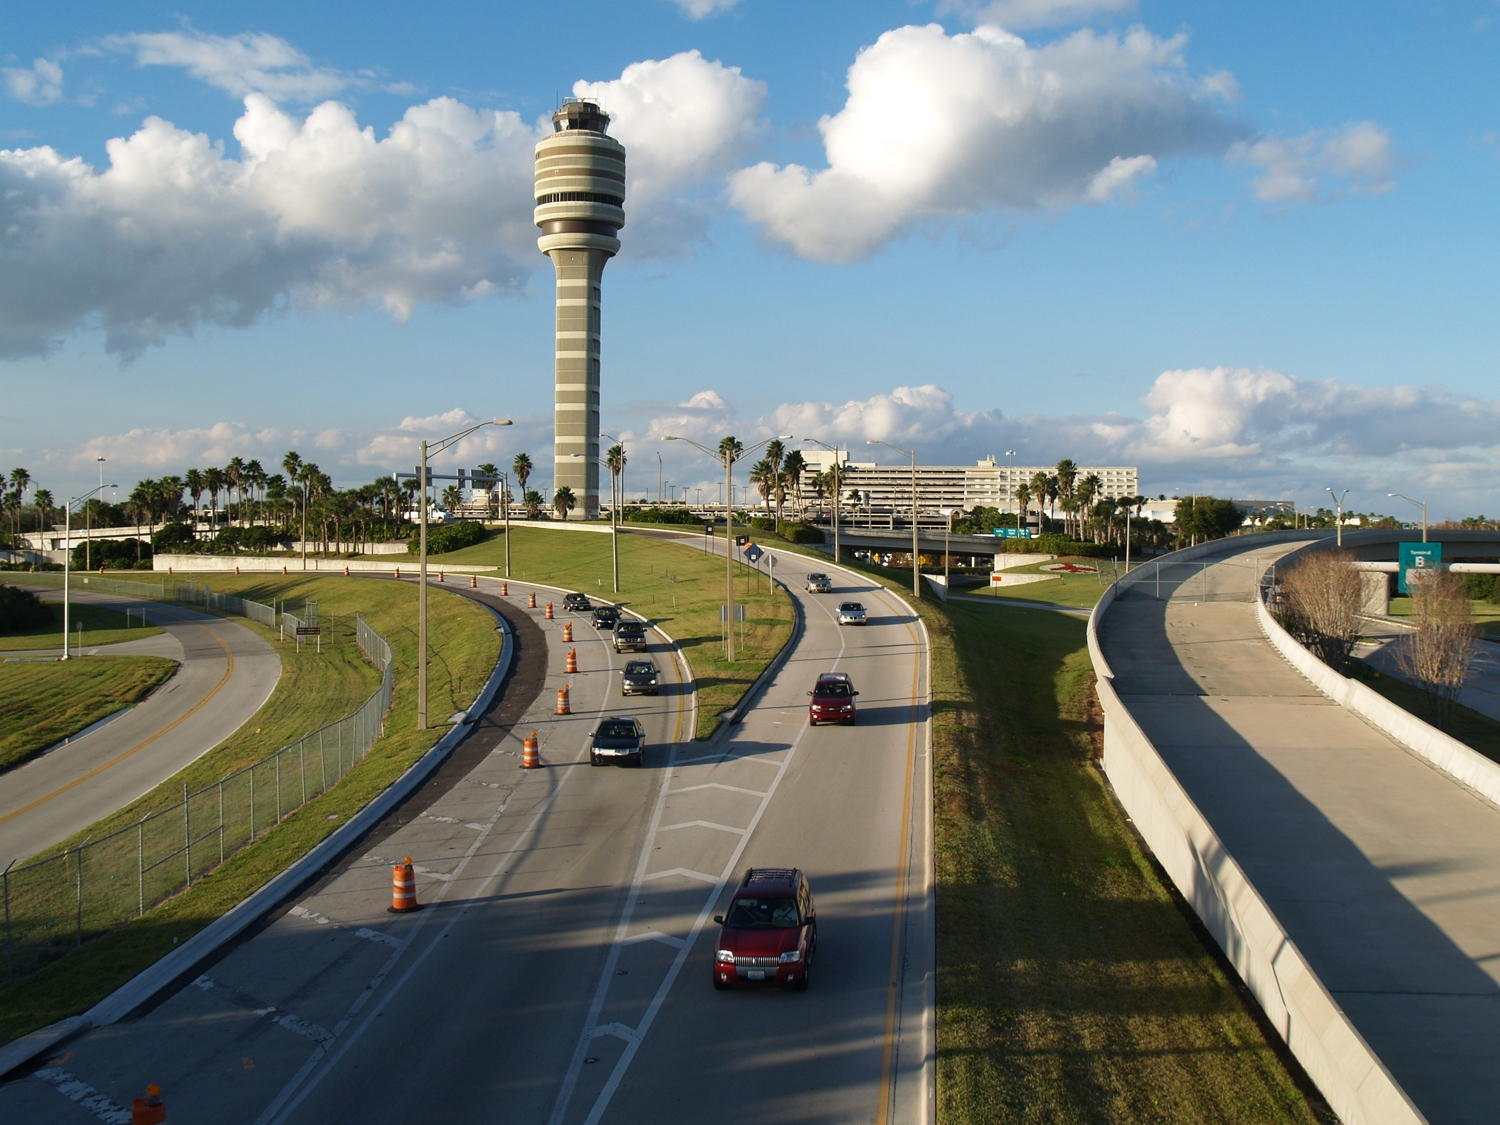 FAA Tower/Terminal South Exit